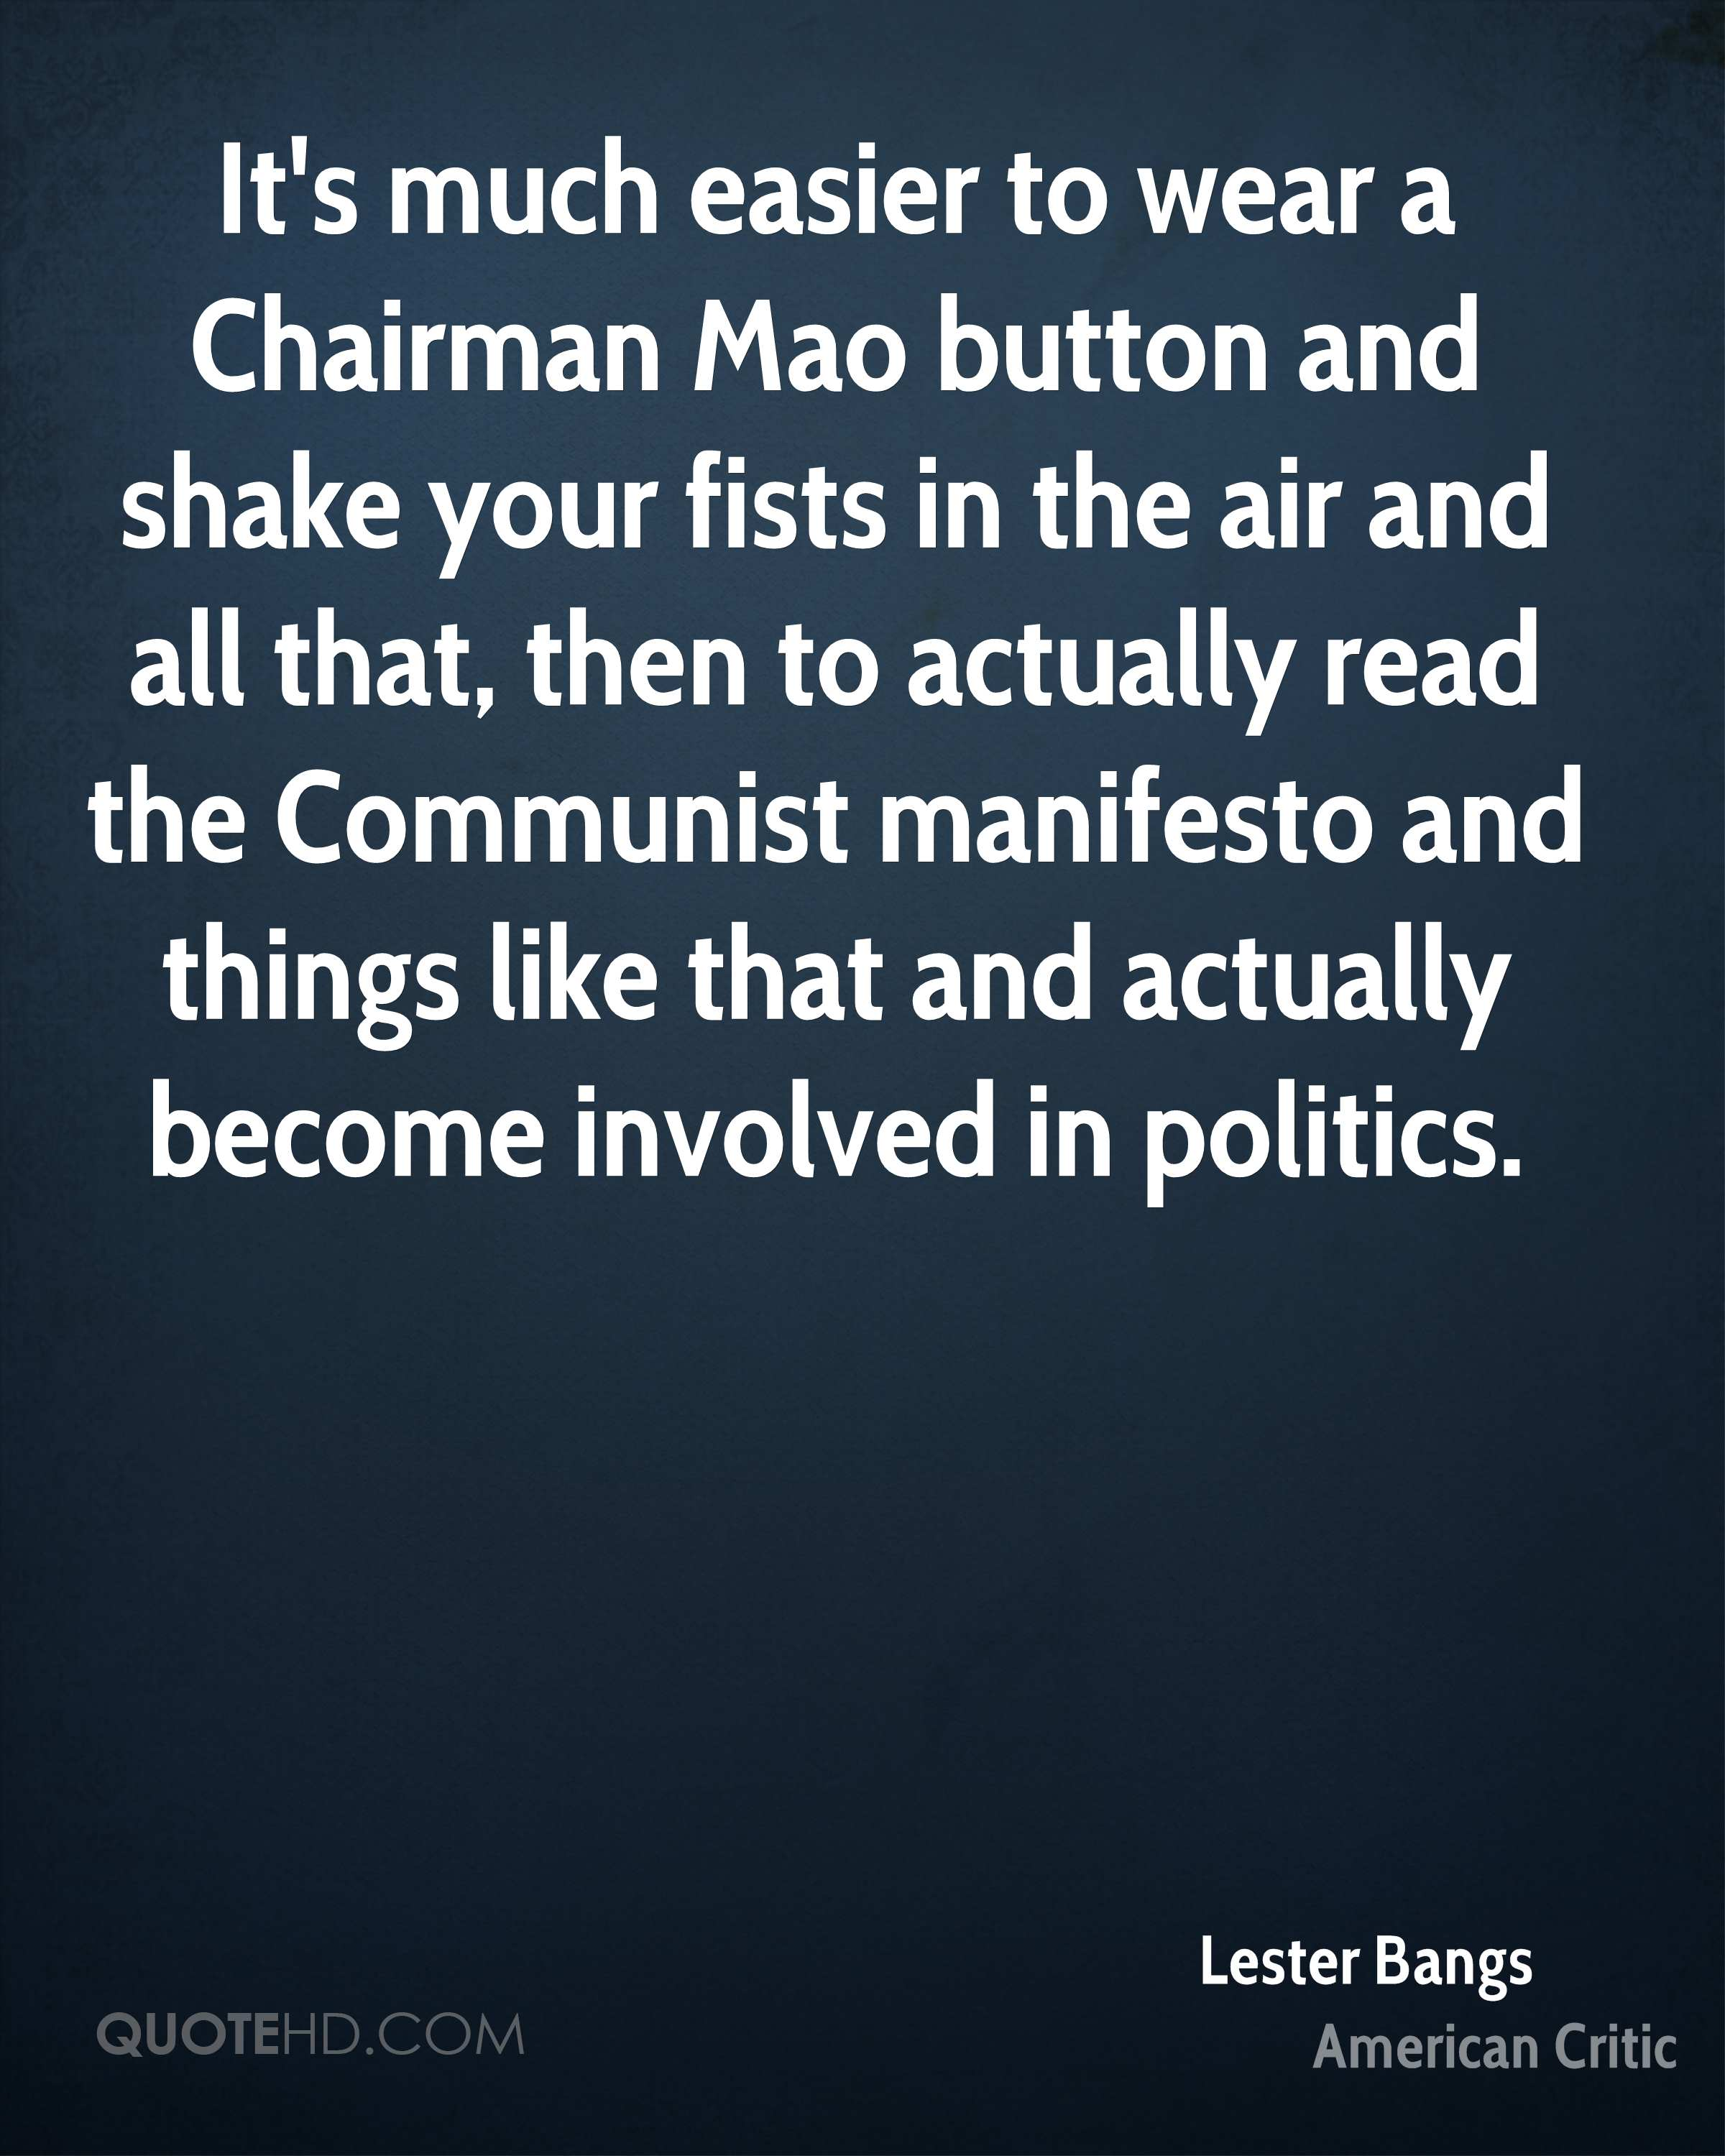 It's much easier to wear a Chairman Mao button and shake your fists in the air and all that, then to actually read the Communist manifesto and things like that and actually become involved in politics.